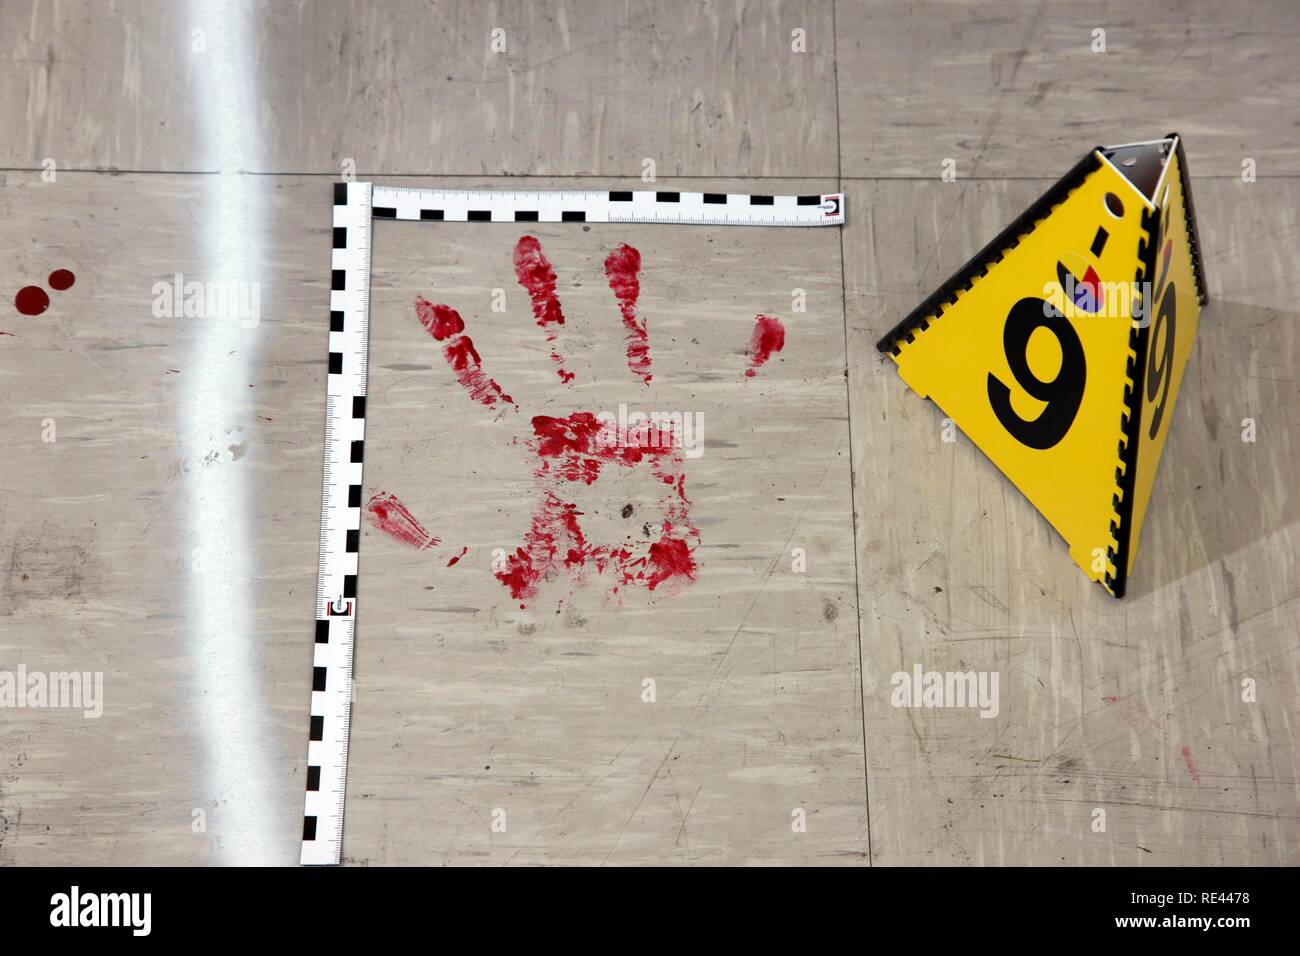 Securing Of Forensic Evidence At A Crime Scene After A Capital Offence Homicide By The C I D The Criminal Investigation Stock Photo Alamy